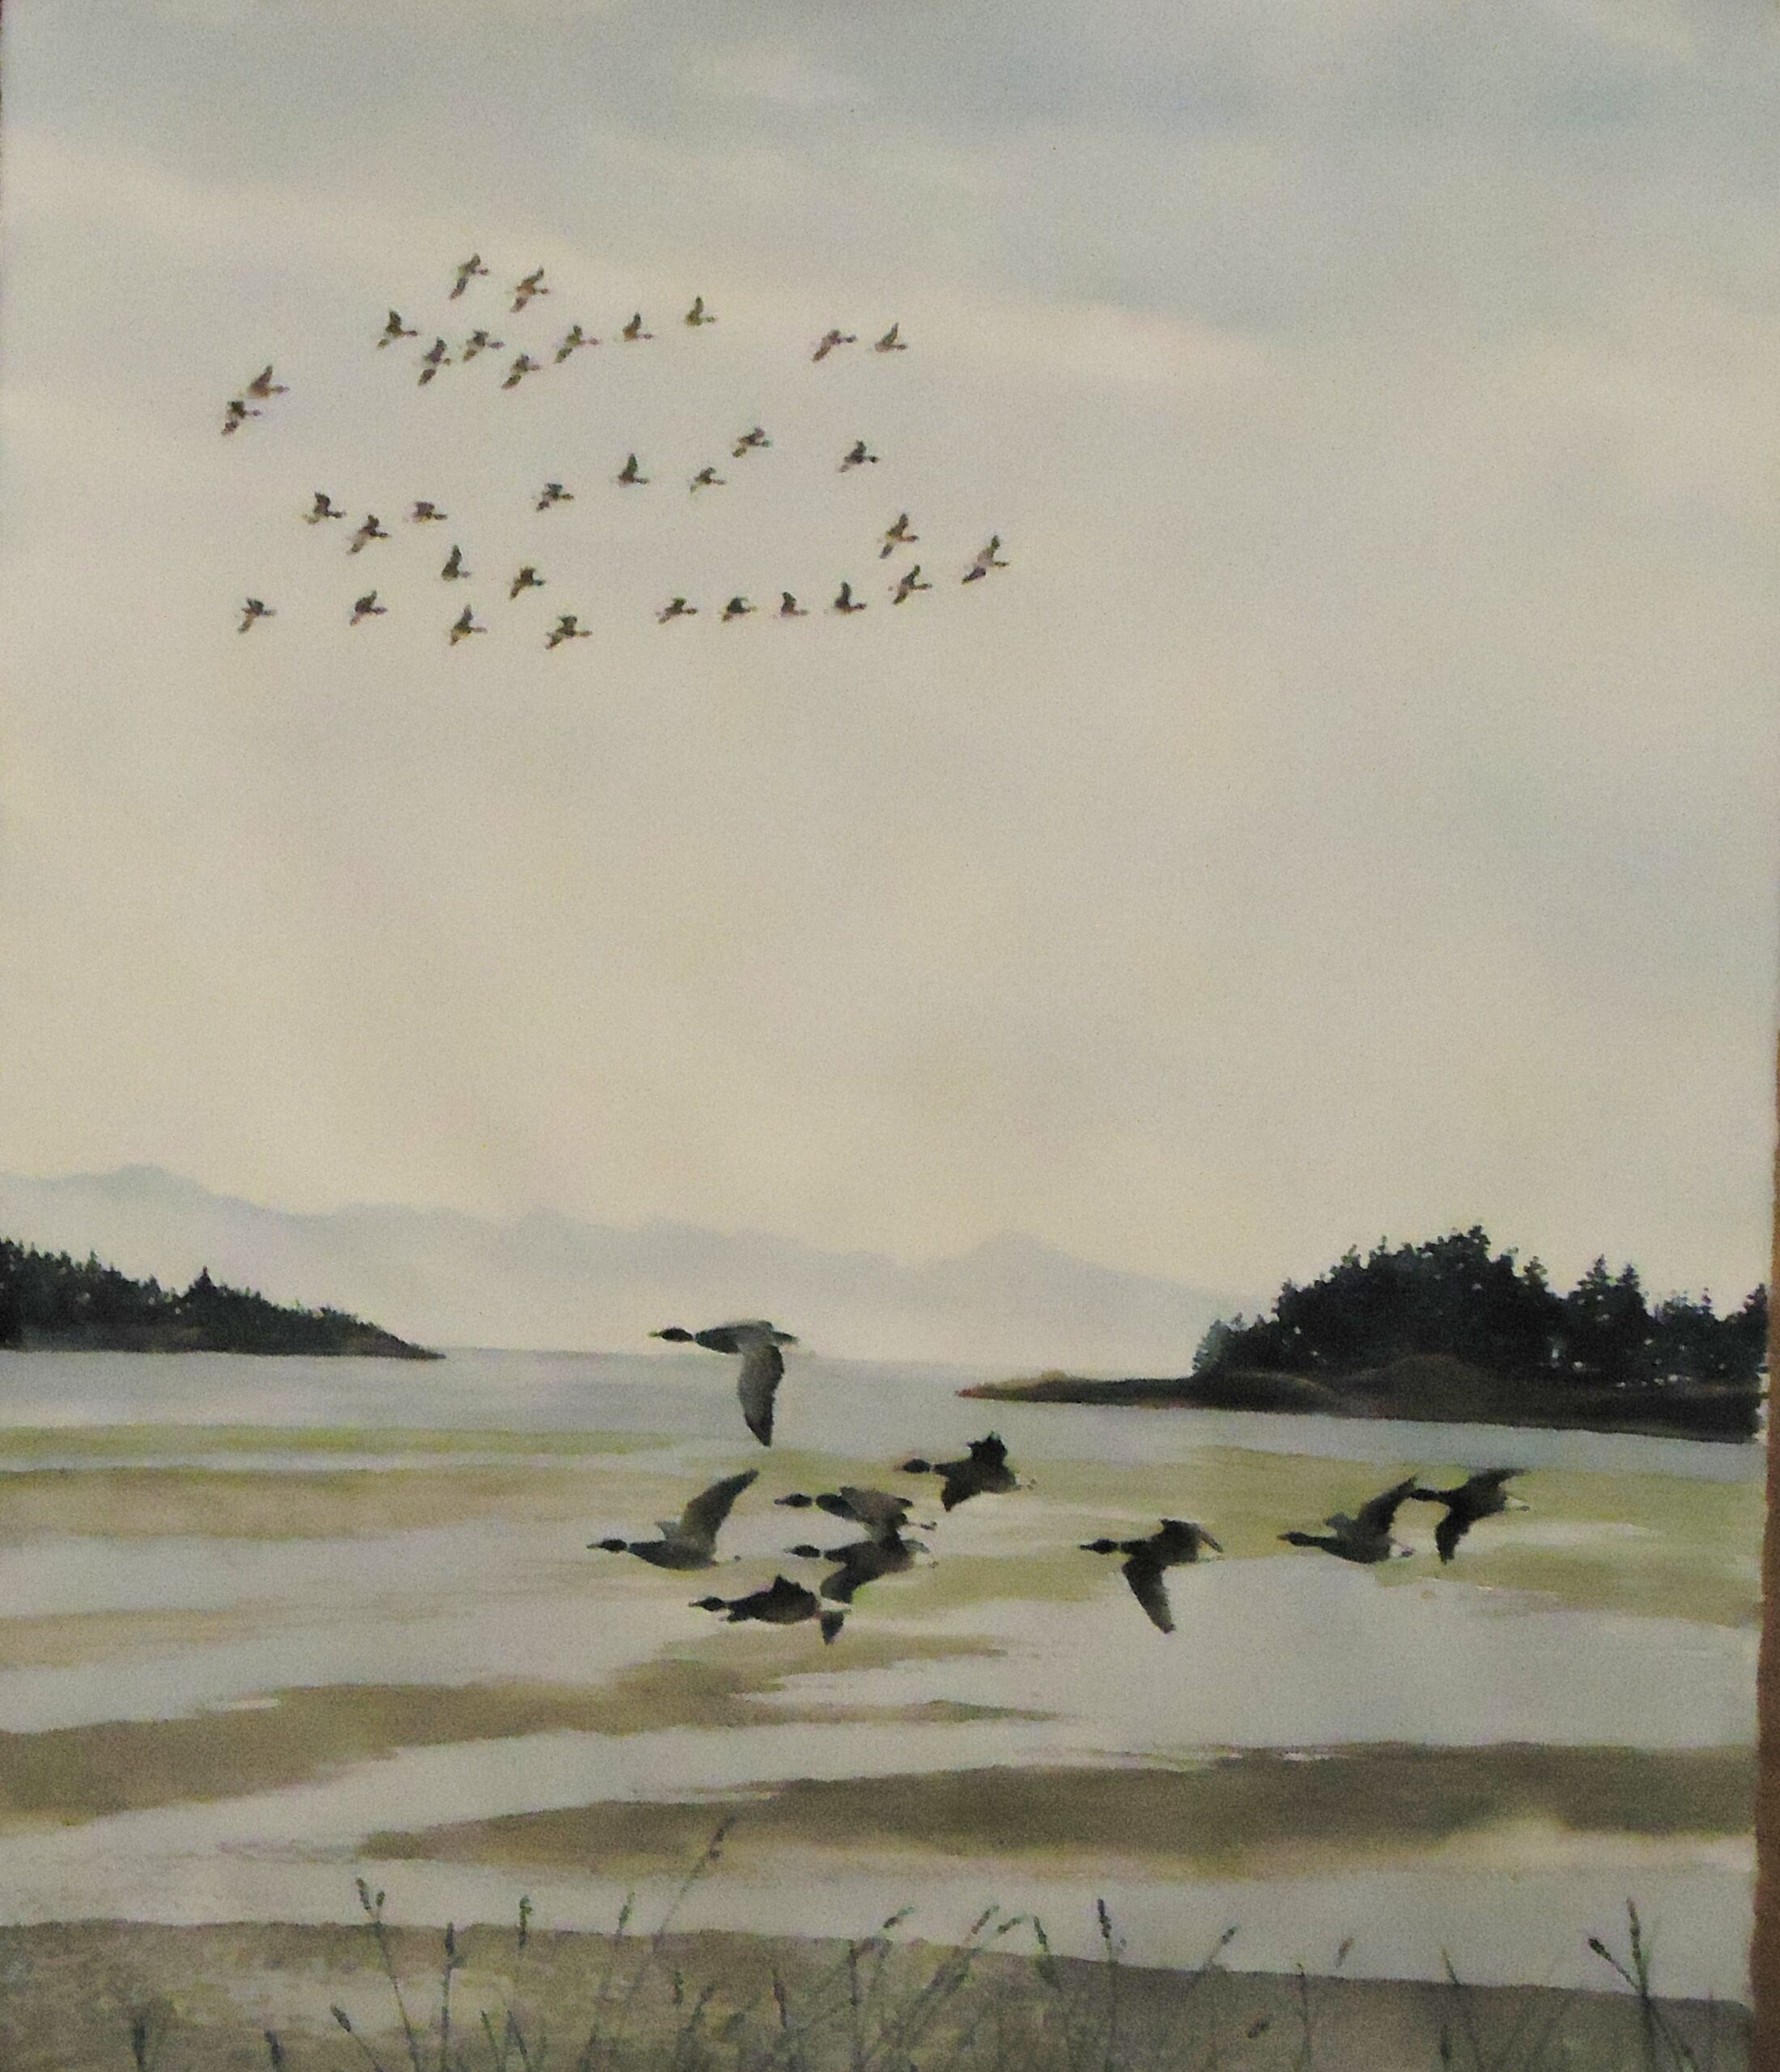 A water colour painting of some Brandt geese flying low over a sandy shore with additional geese flying high in the sky by Keith Cains.